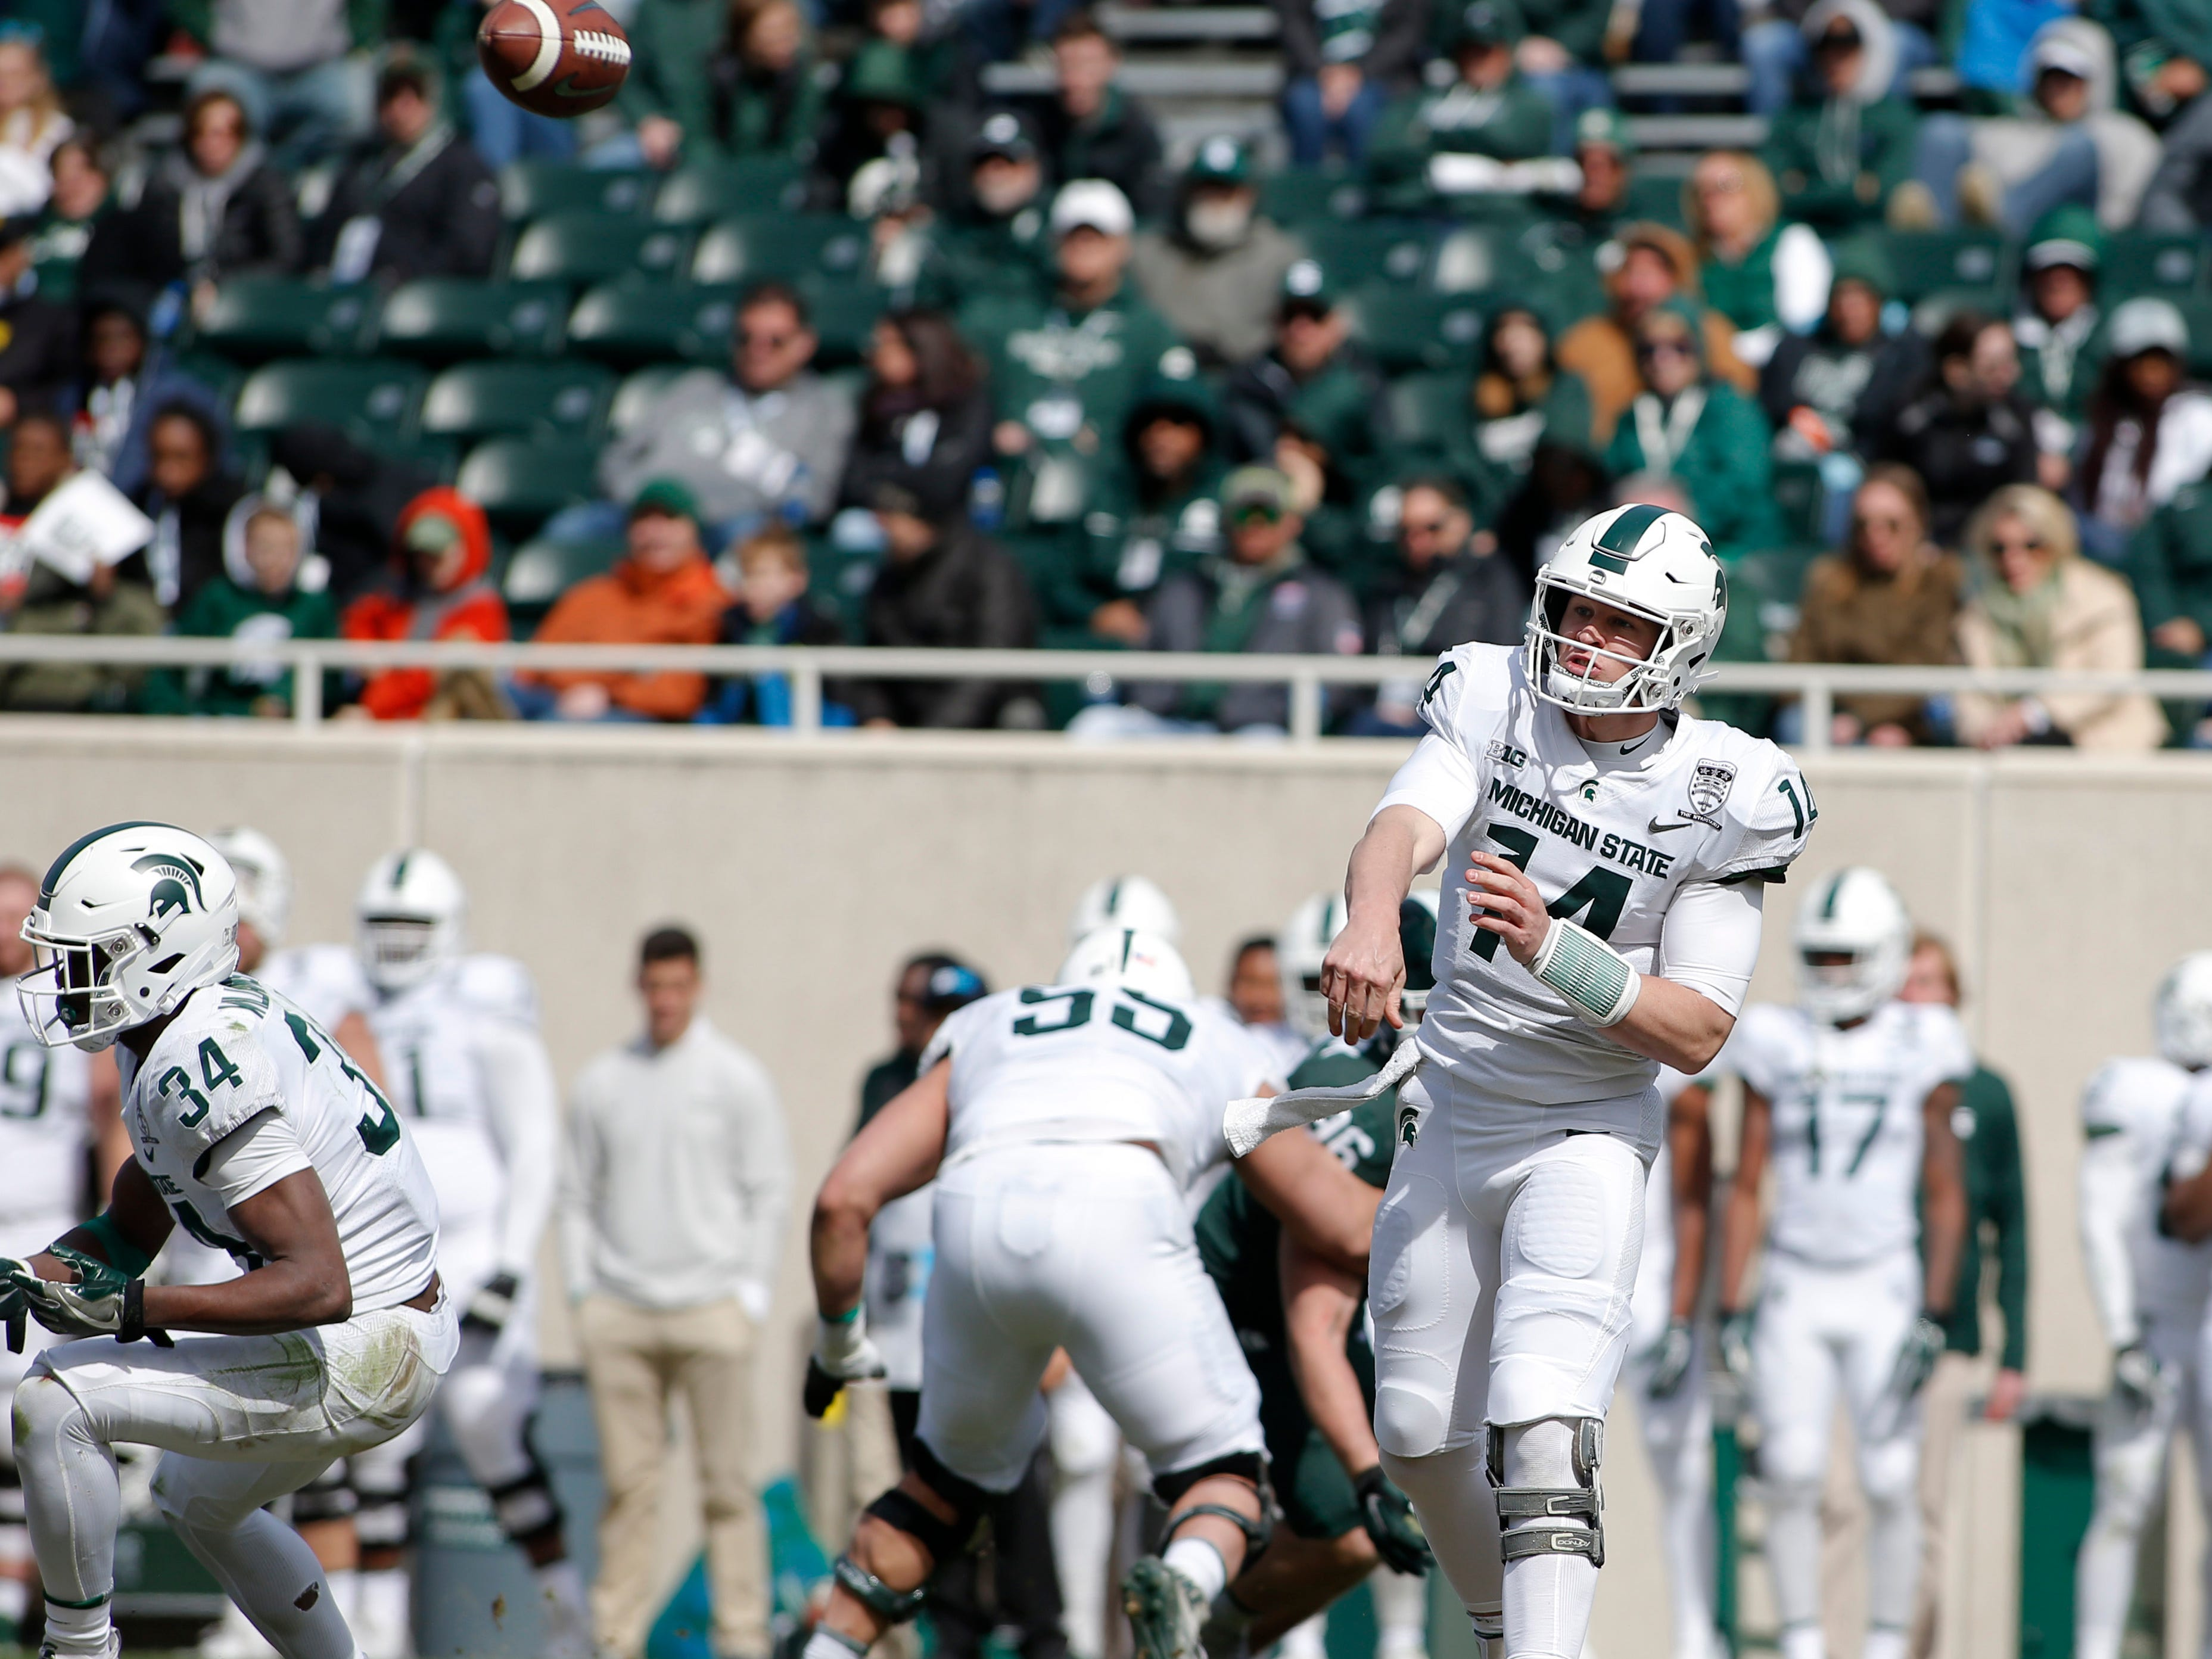 Michigan State quarterback Brian Lewerke throws a pass during a spring scrimmage, Saturday, April 13, 2019, in East Lansing.